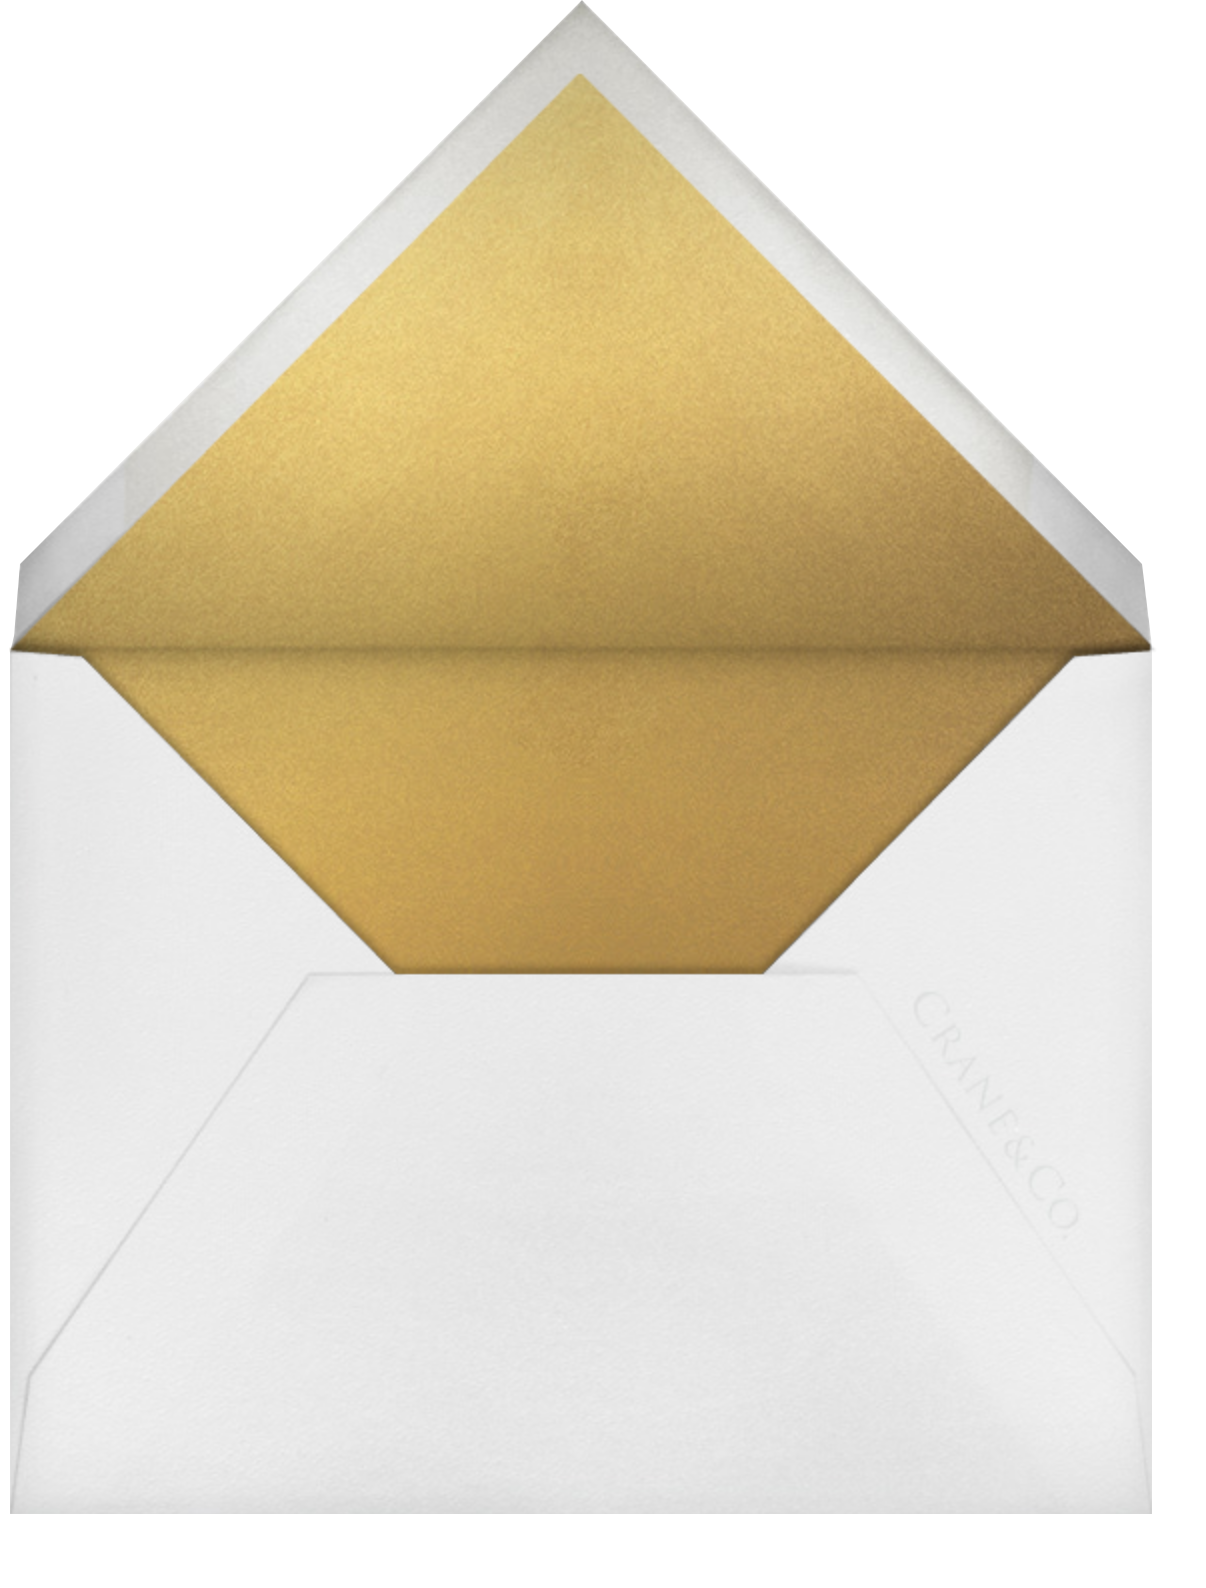 Roman (Save the Date) - Gold - Vera Wang - Classic  - envelope back